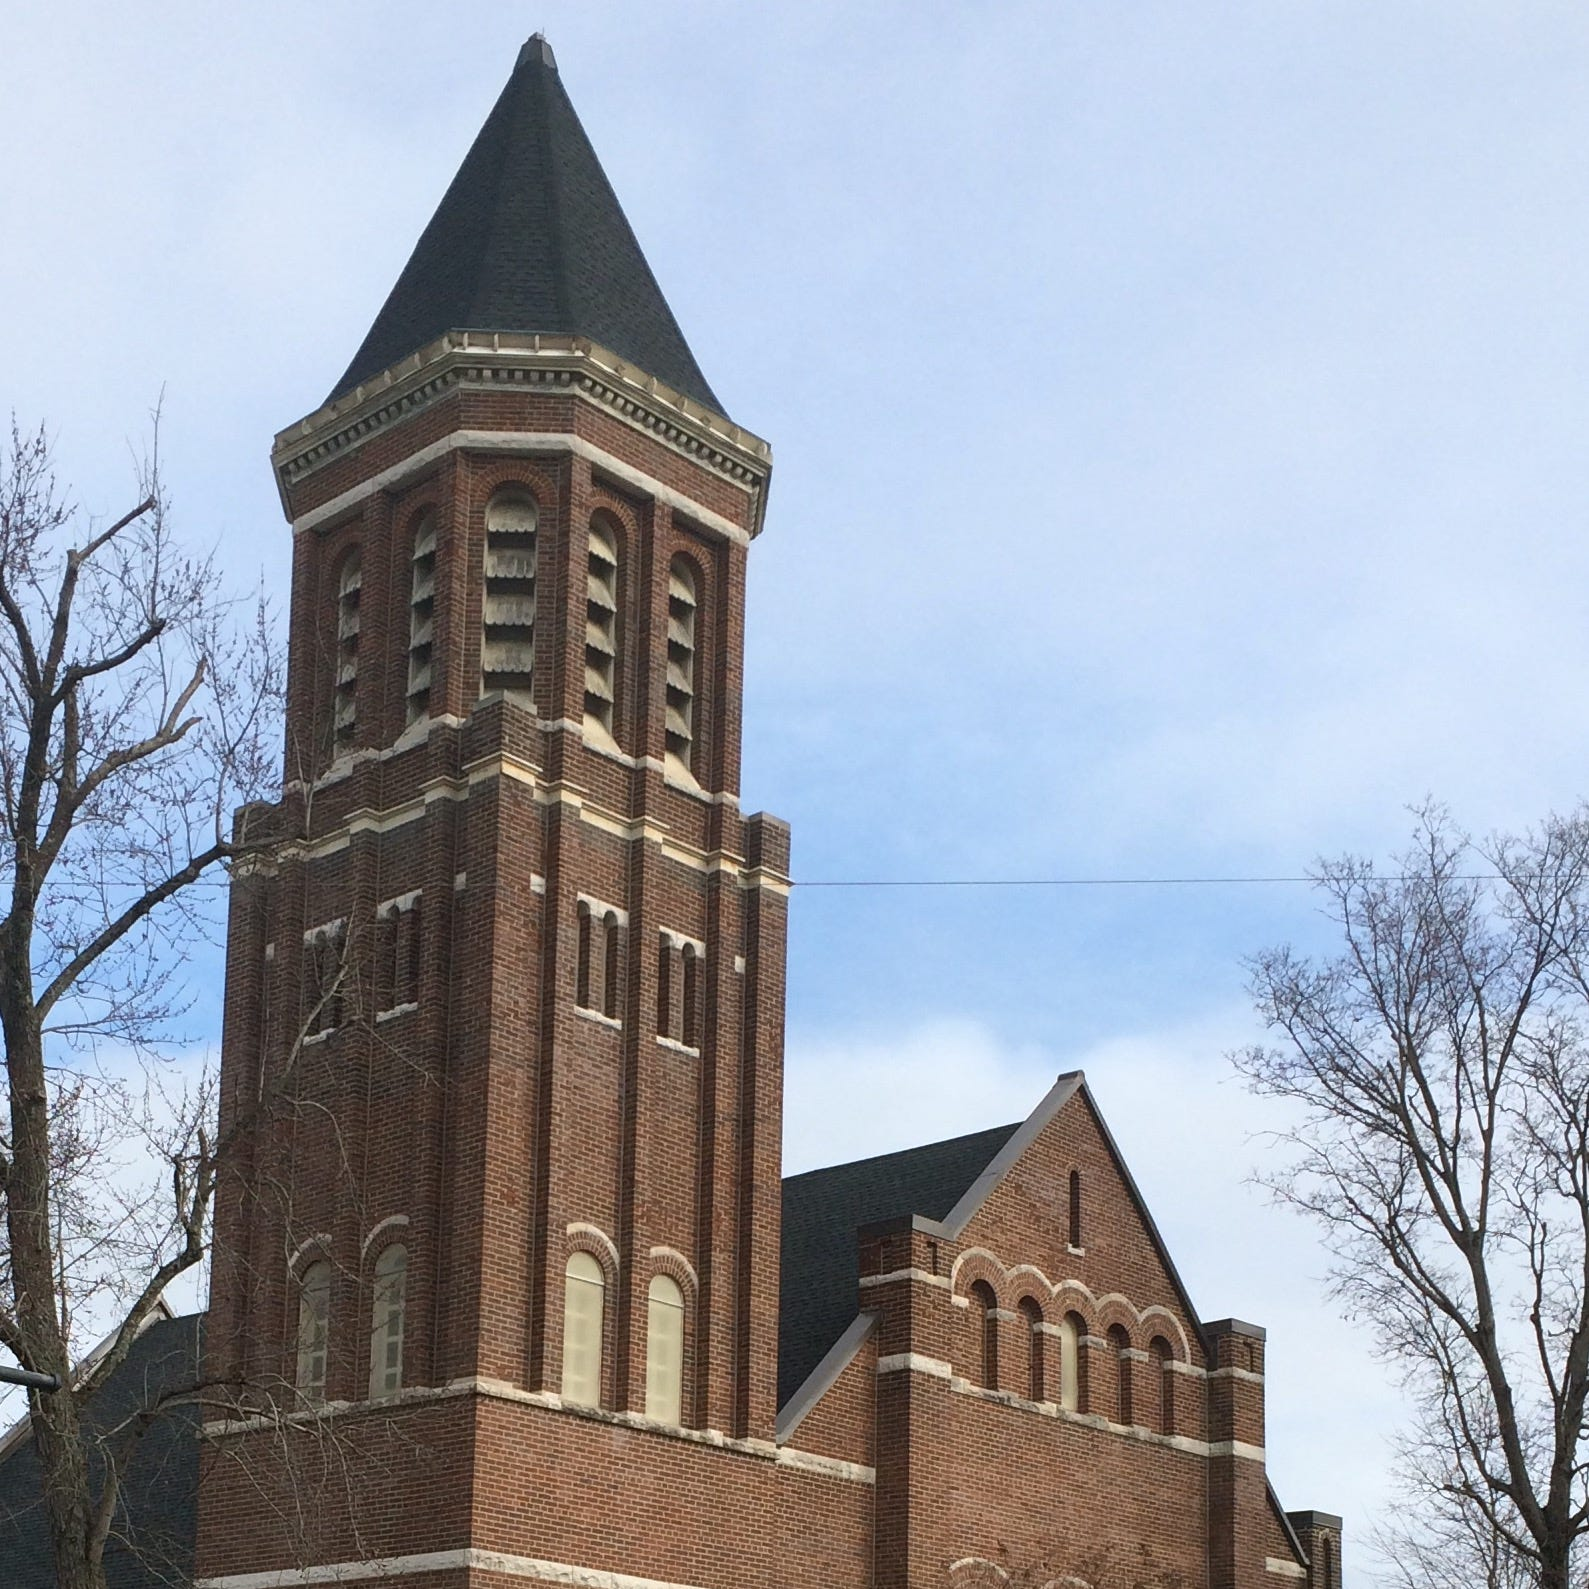 Starbucks may be part of downtown Murfreesboro's historic church redevelopment project